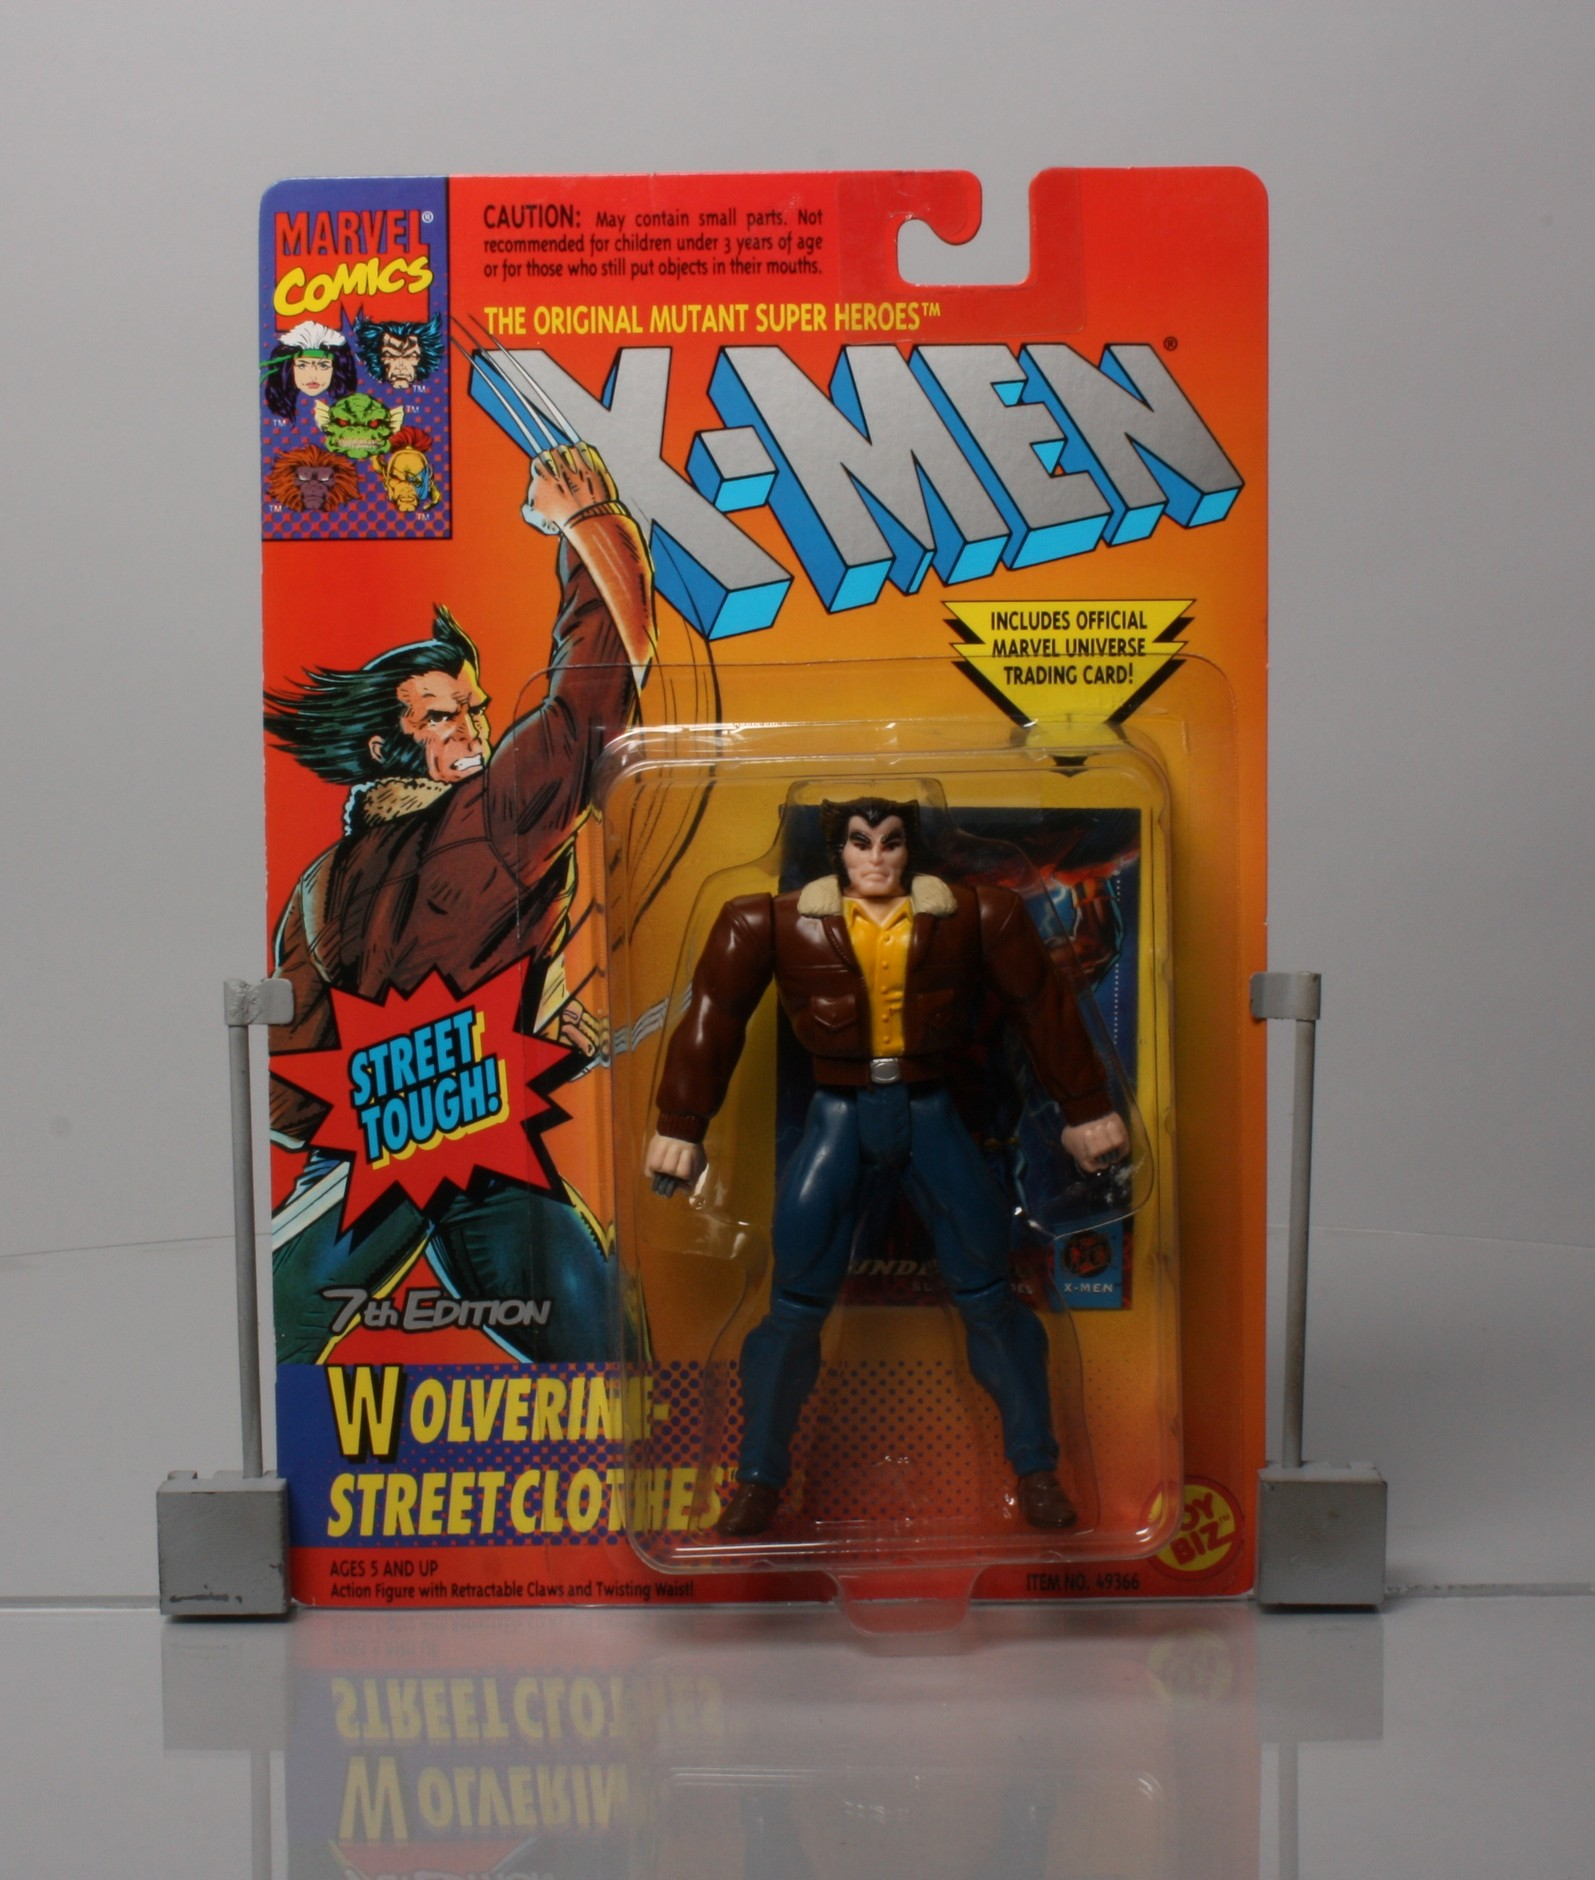 Wolverine - Street Clothes - 7th Edition - Street Tough!